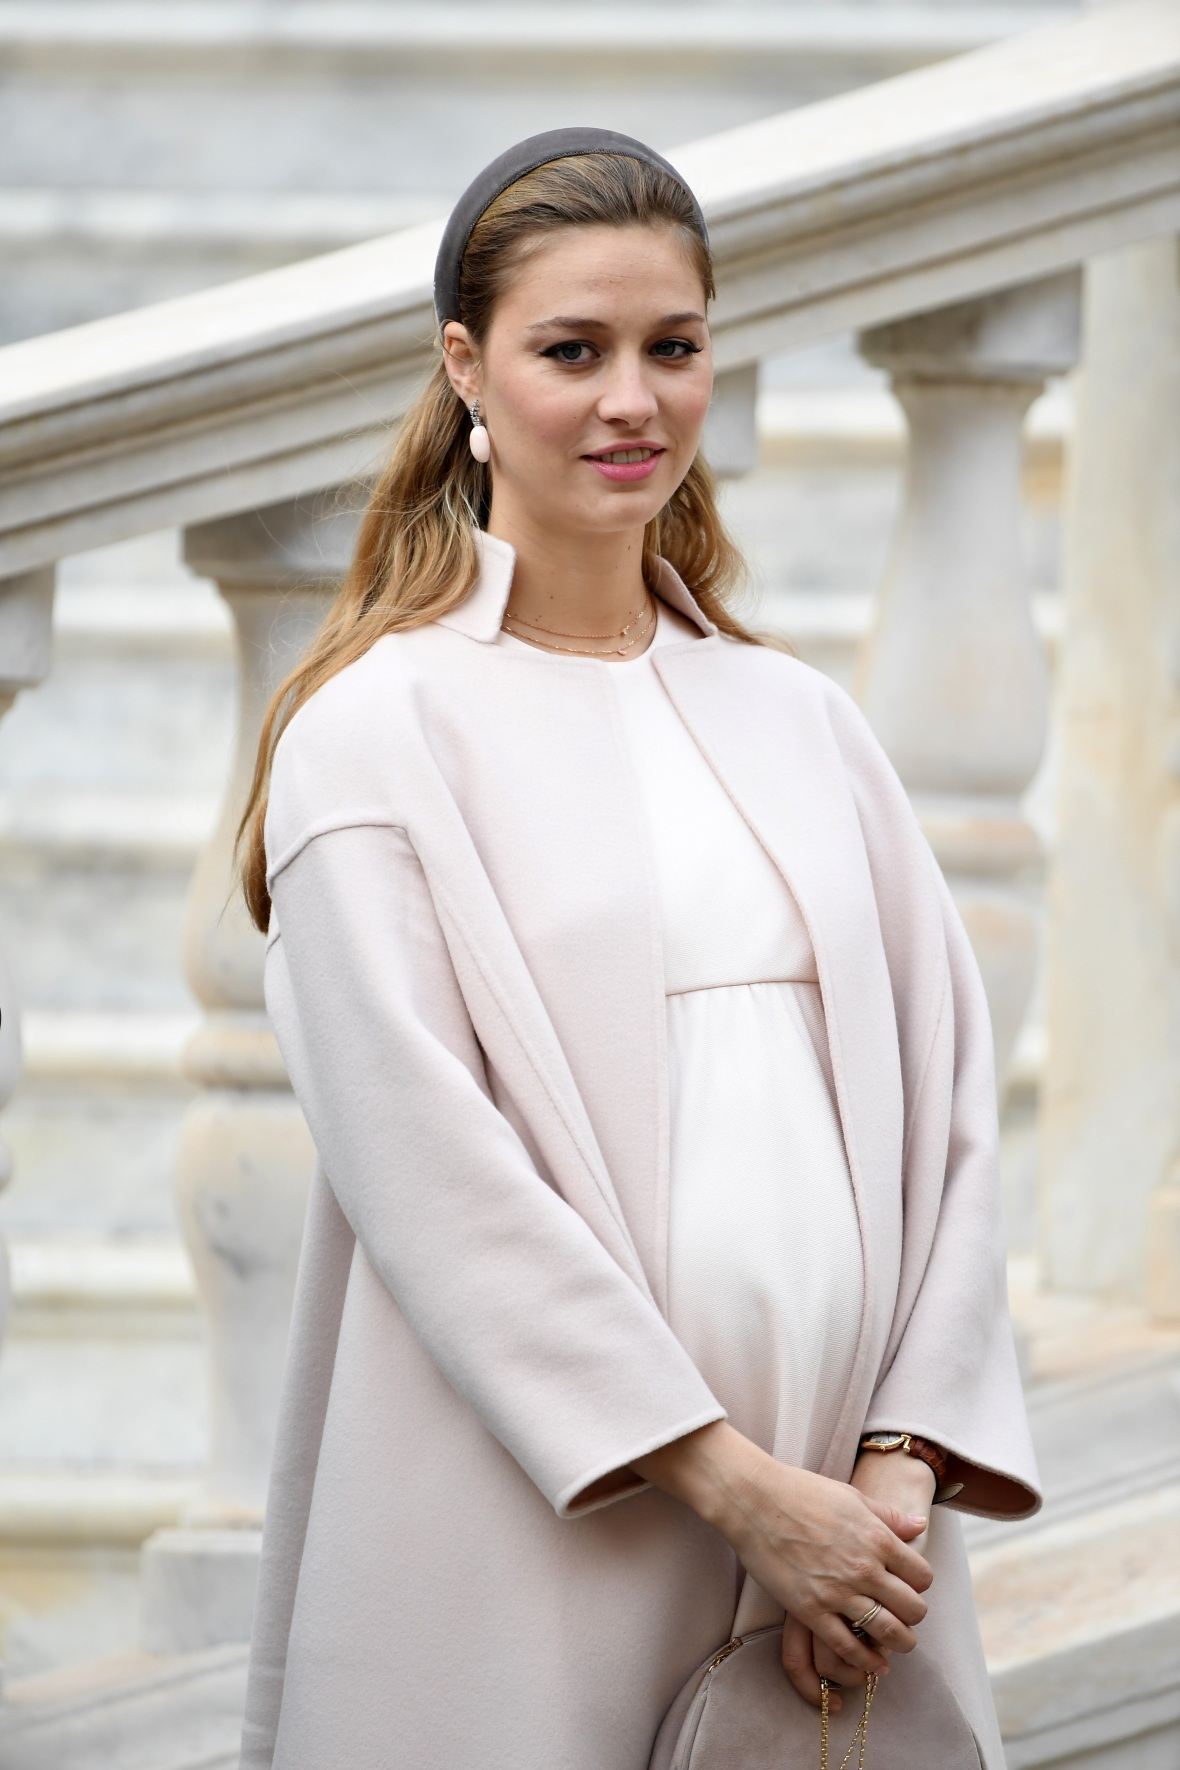 beatrice borromeo getty images